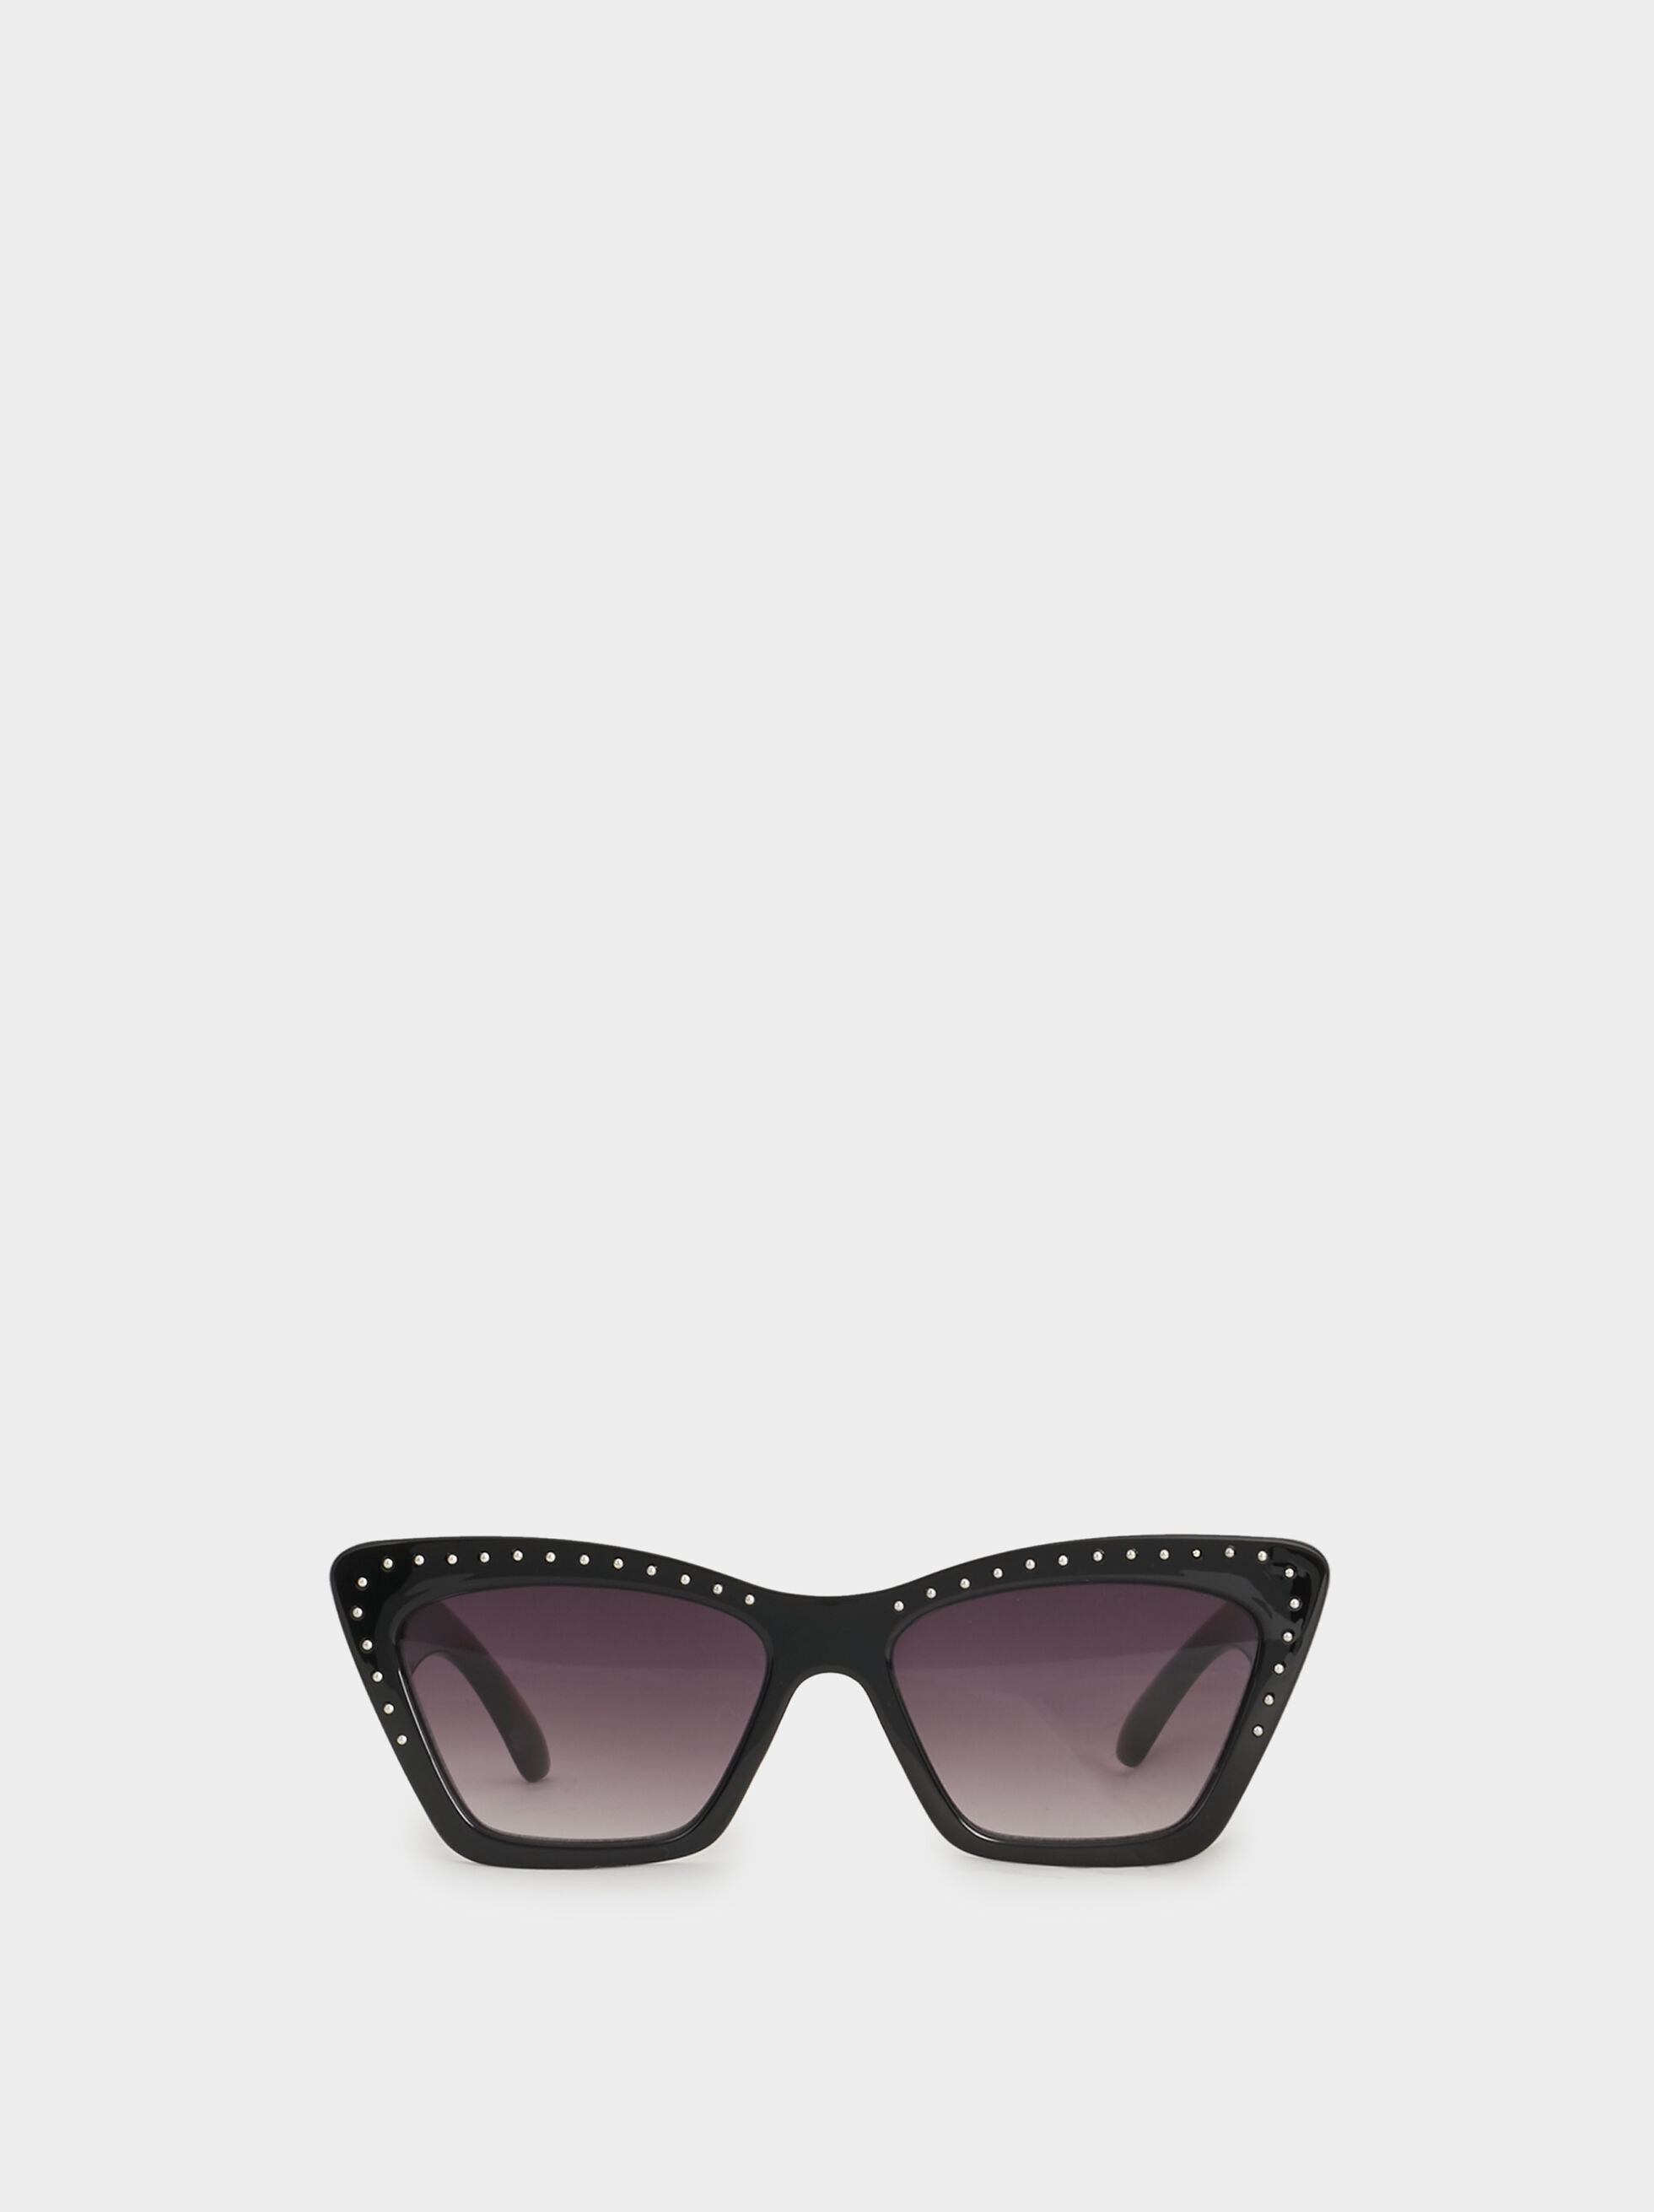 Studded Cat Eye Sunglasses, Black, hi-res